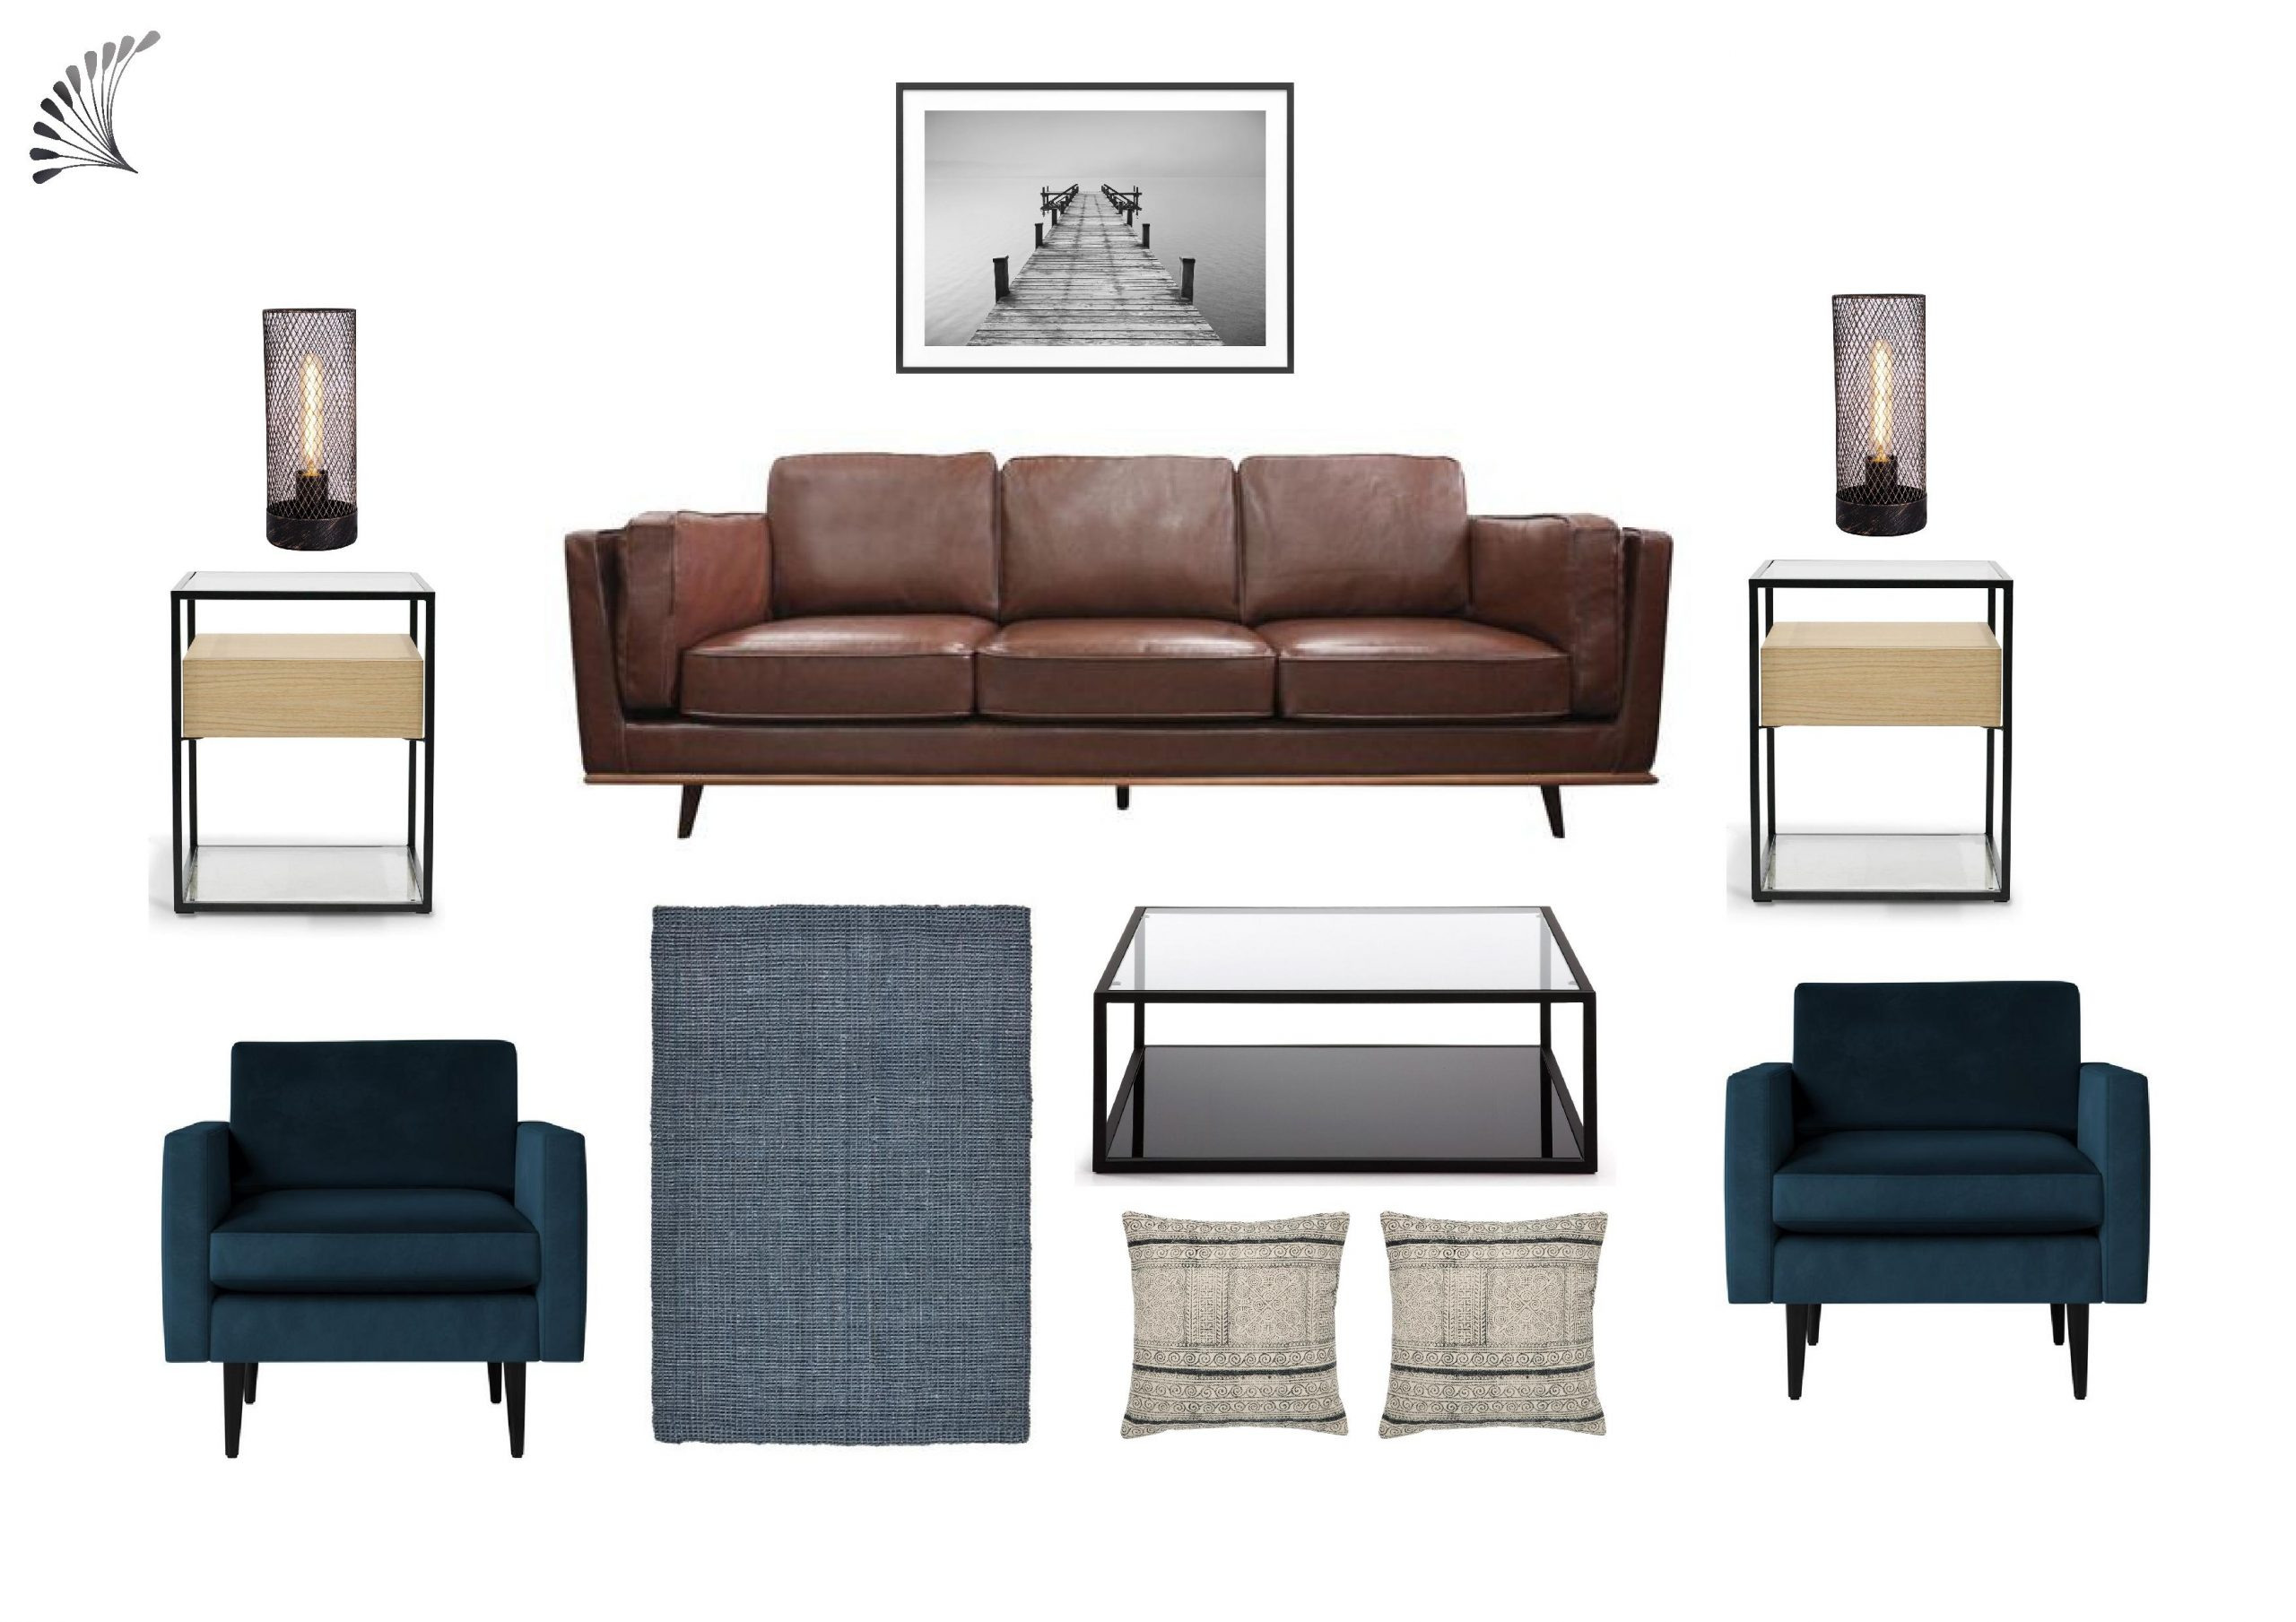 Warm Industrial style living room